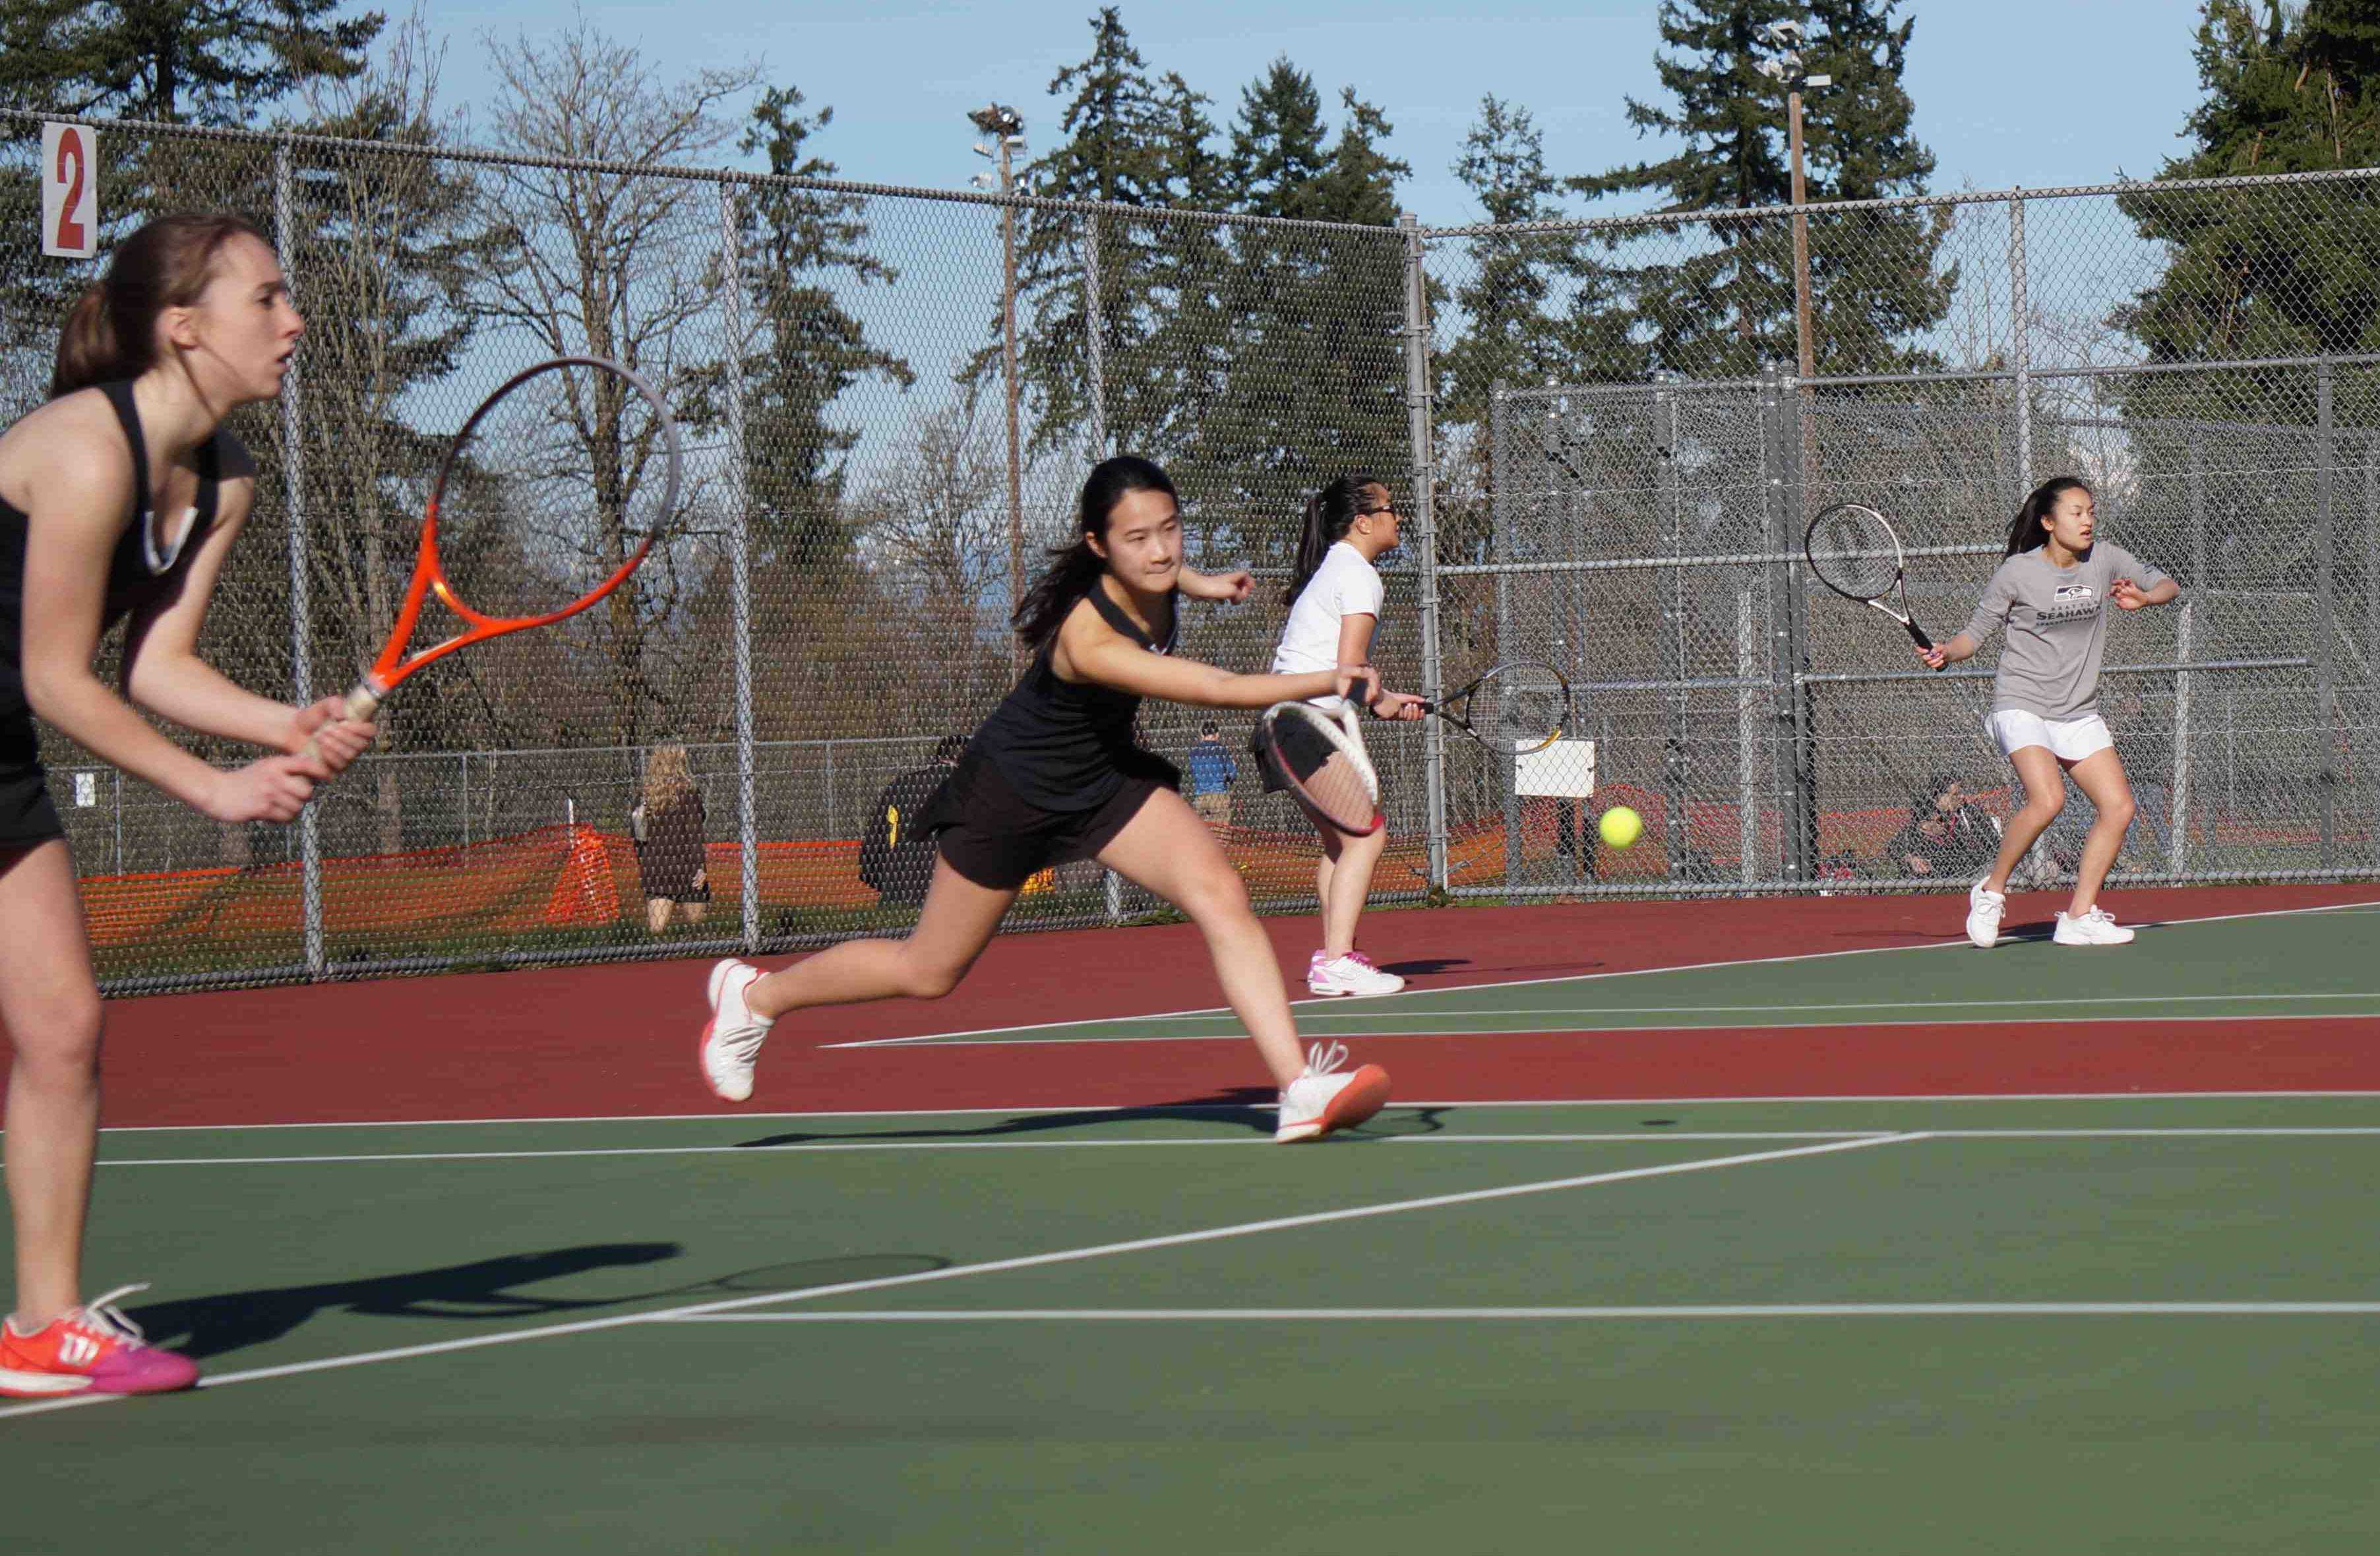 Senior co-captain Teanen Chen  focuses as she prepares to return the ball in her doubles match against Liberty High School. Chen would go on to win the match with her partner and fellow senior co-captain Kaylee Holleman. The team lost 3-4, with all of the doubles teams winning and all of the singles players losing. The girls' tennis team record is 0-2, which they seek to improve next Tuesday against Redmond.